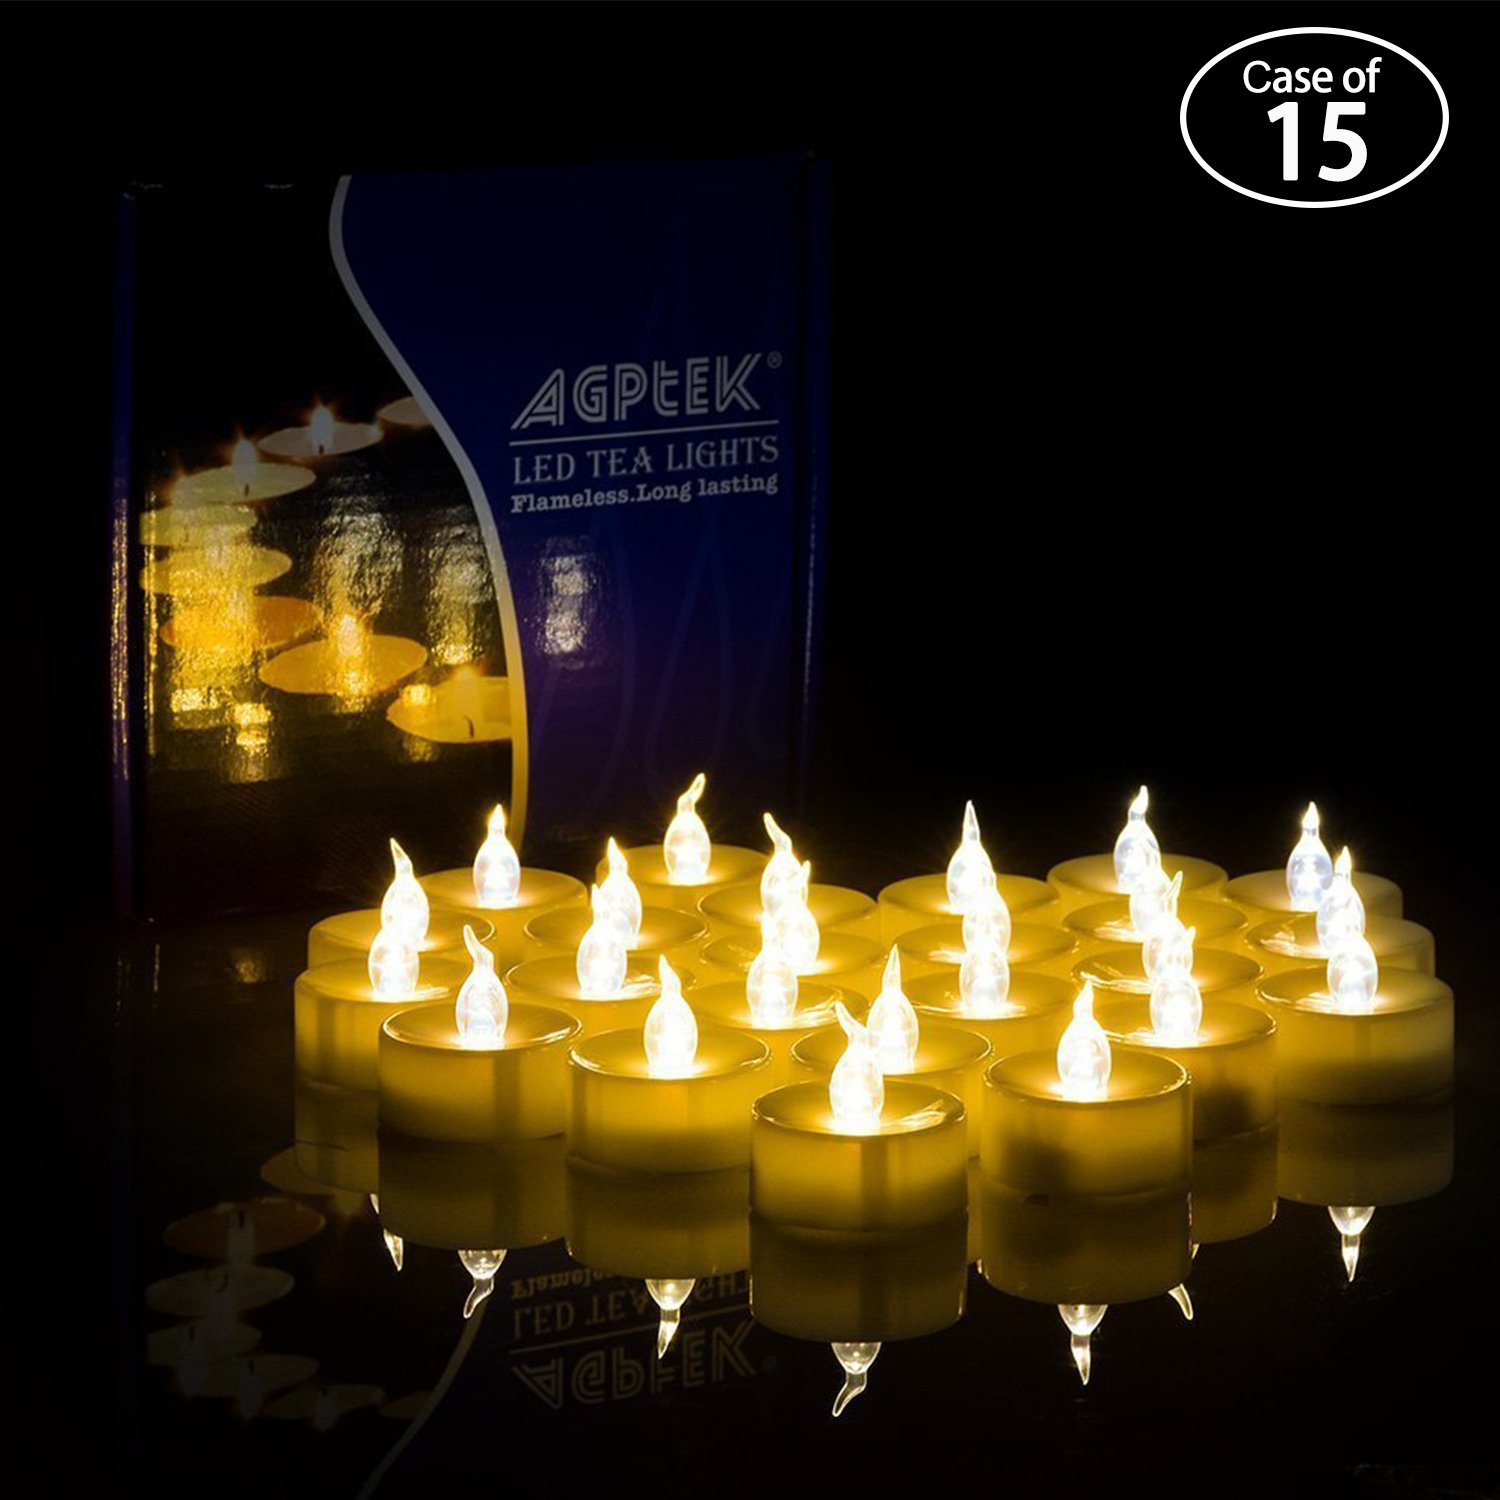 AGPTEK Case of 15, Lot 100 Battery Operated LED Flameless Flickering Flashing Tea Light Candle - Amber Yellow